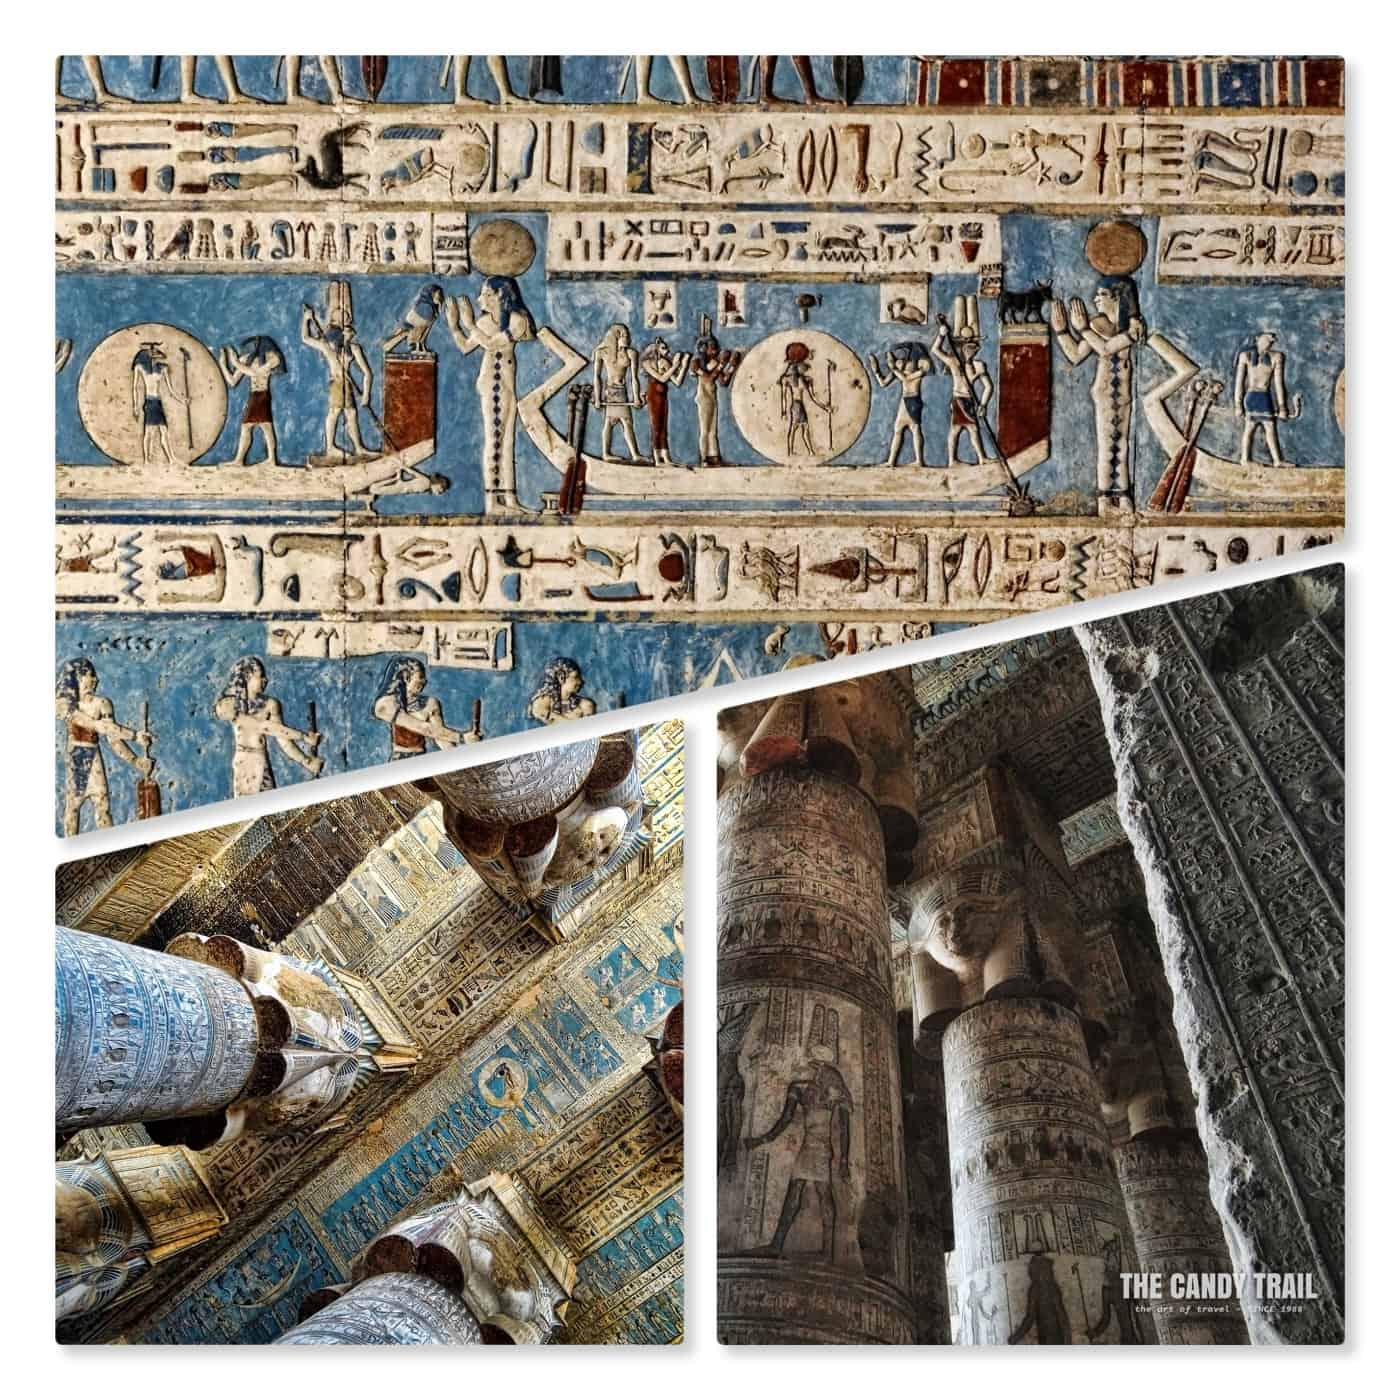 pillars and painted reliefs of hathor temple in dendera egypt